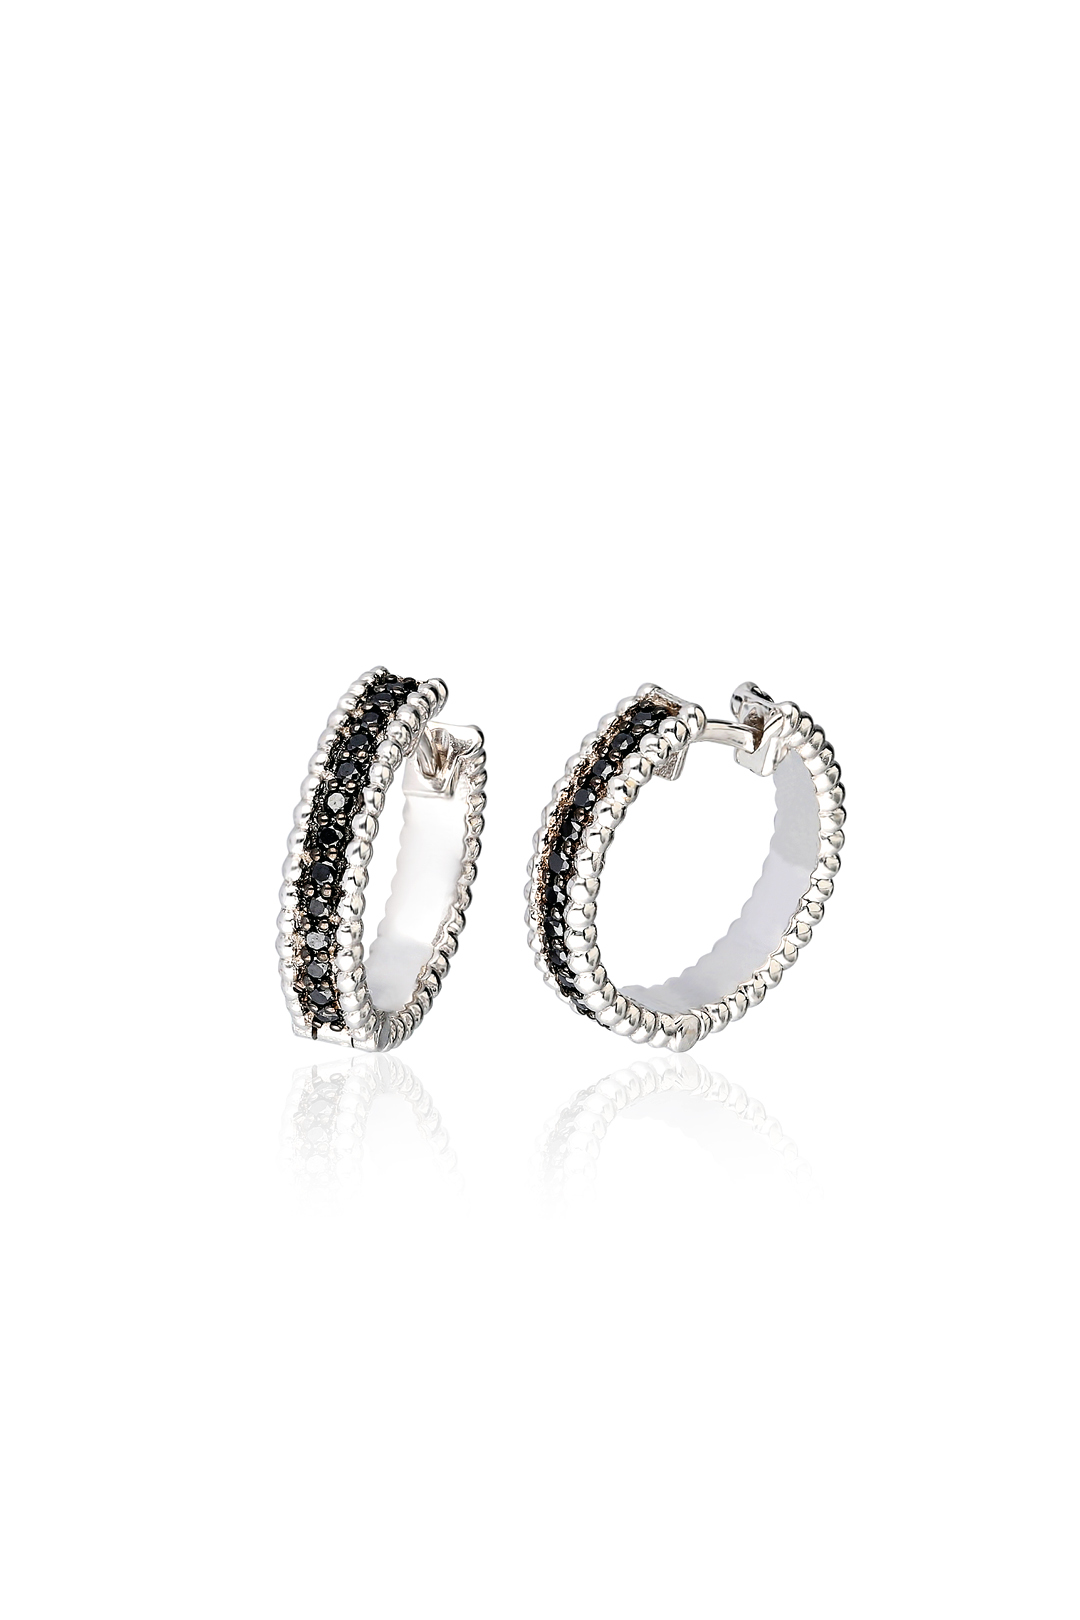 HOOP BLACK DIAMOND EARRING